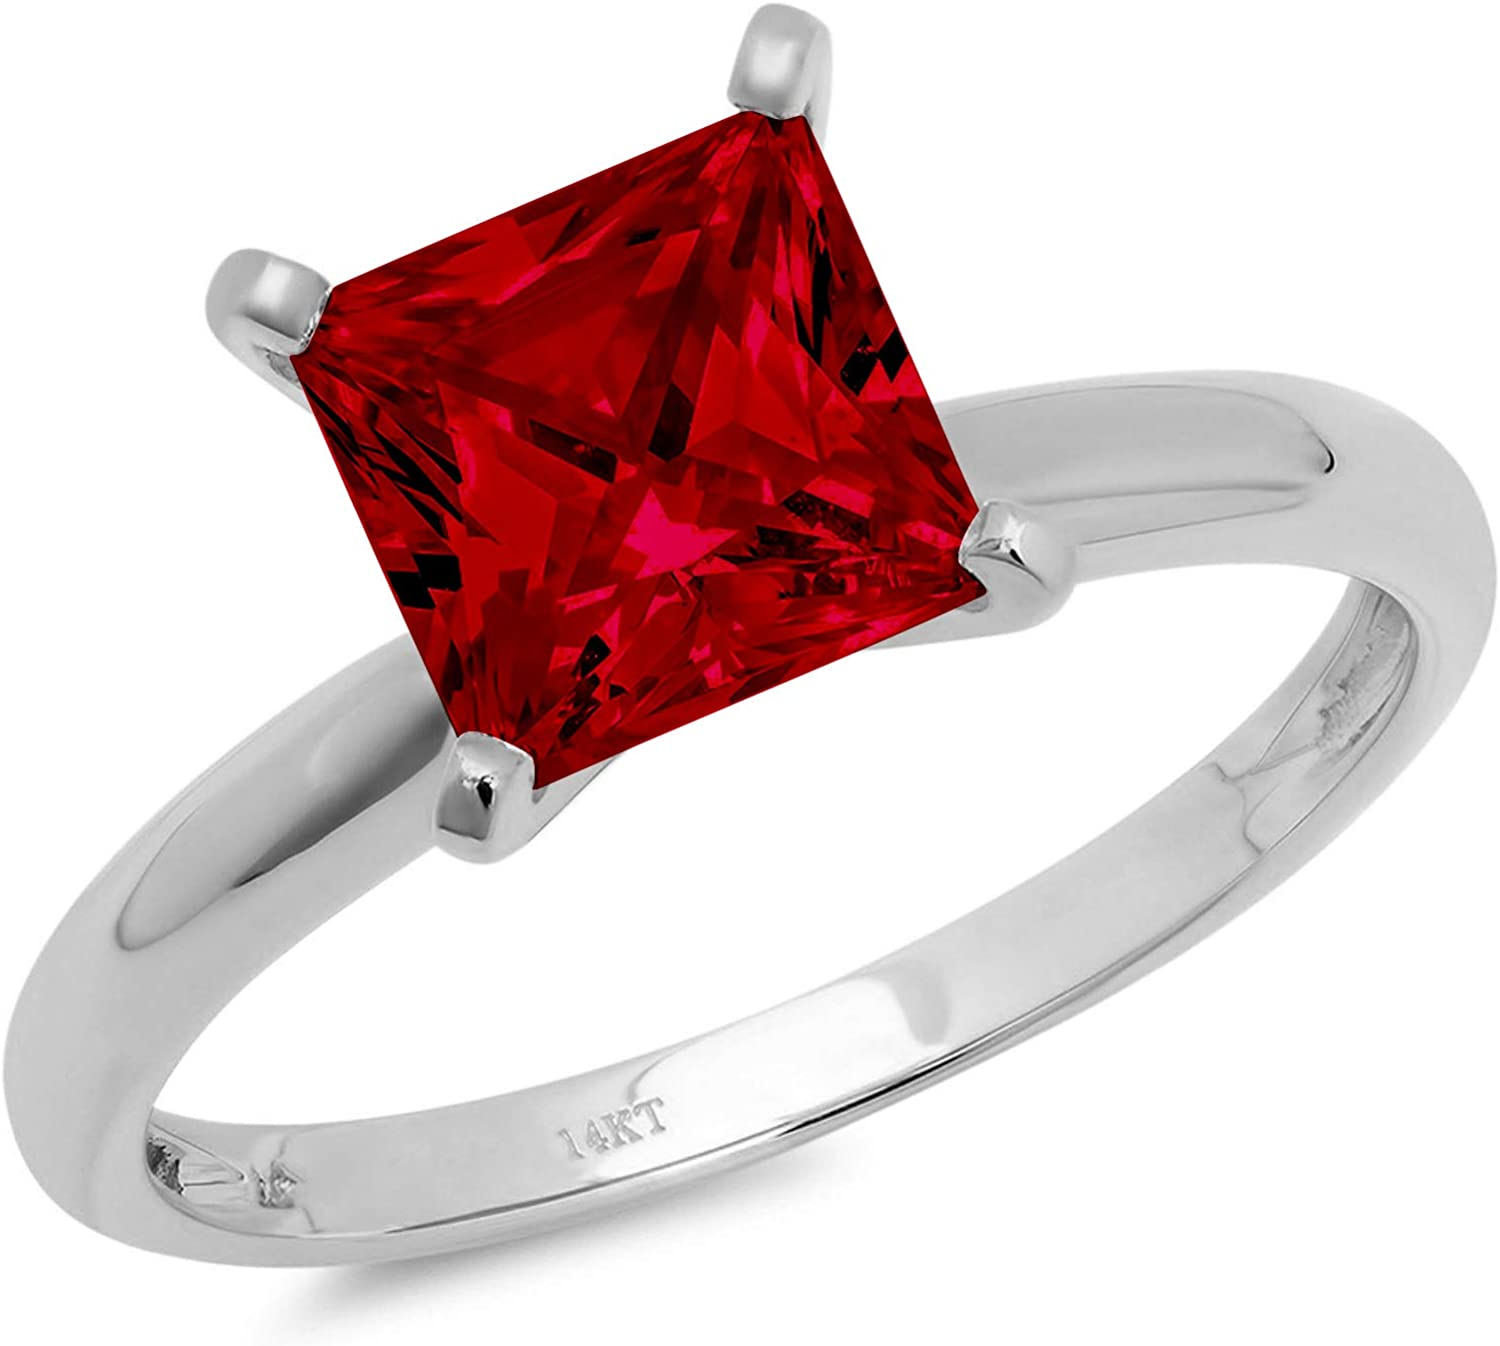 0.4ct Brilliant Princess Cut Solitaire Natural Crimson Deep Red Garnet Ideal VVS1 4-Prong Engagement Wedding Bridal Promise Anniversary Ring Solid 14k White Gold for Women